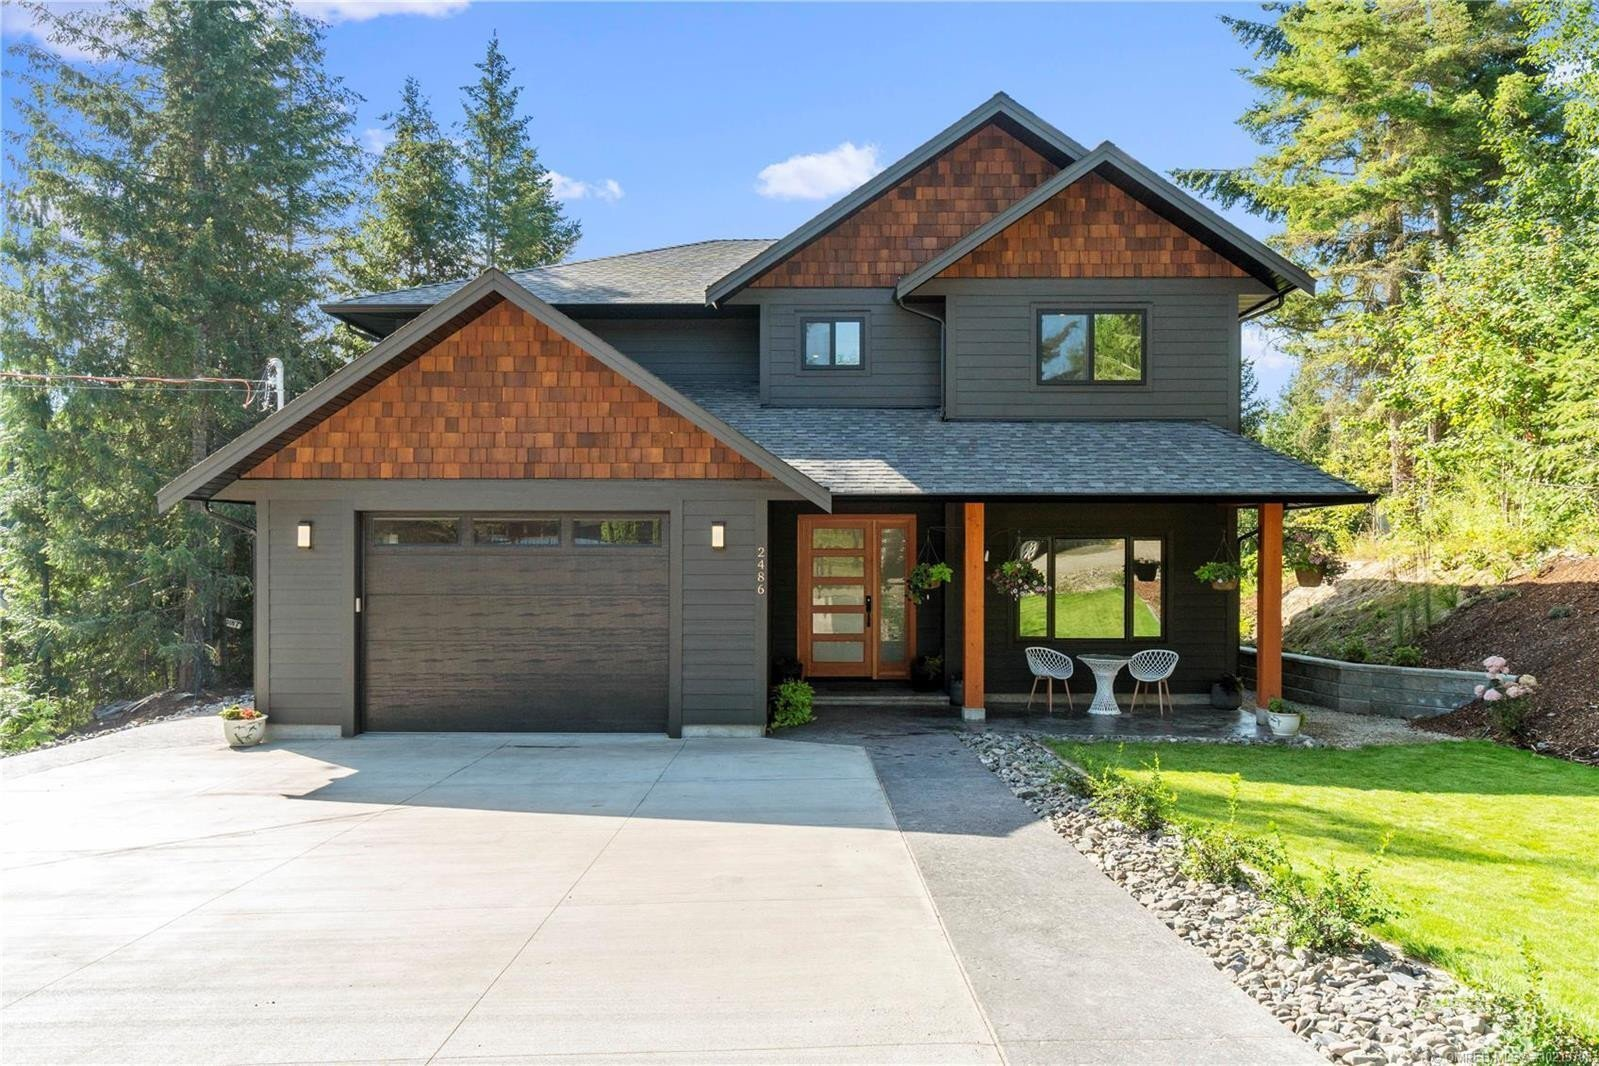 House for sale at 2486 Waverly Dr Blind Bay British Columbia - MLS: 10213708